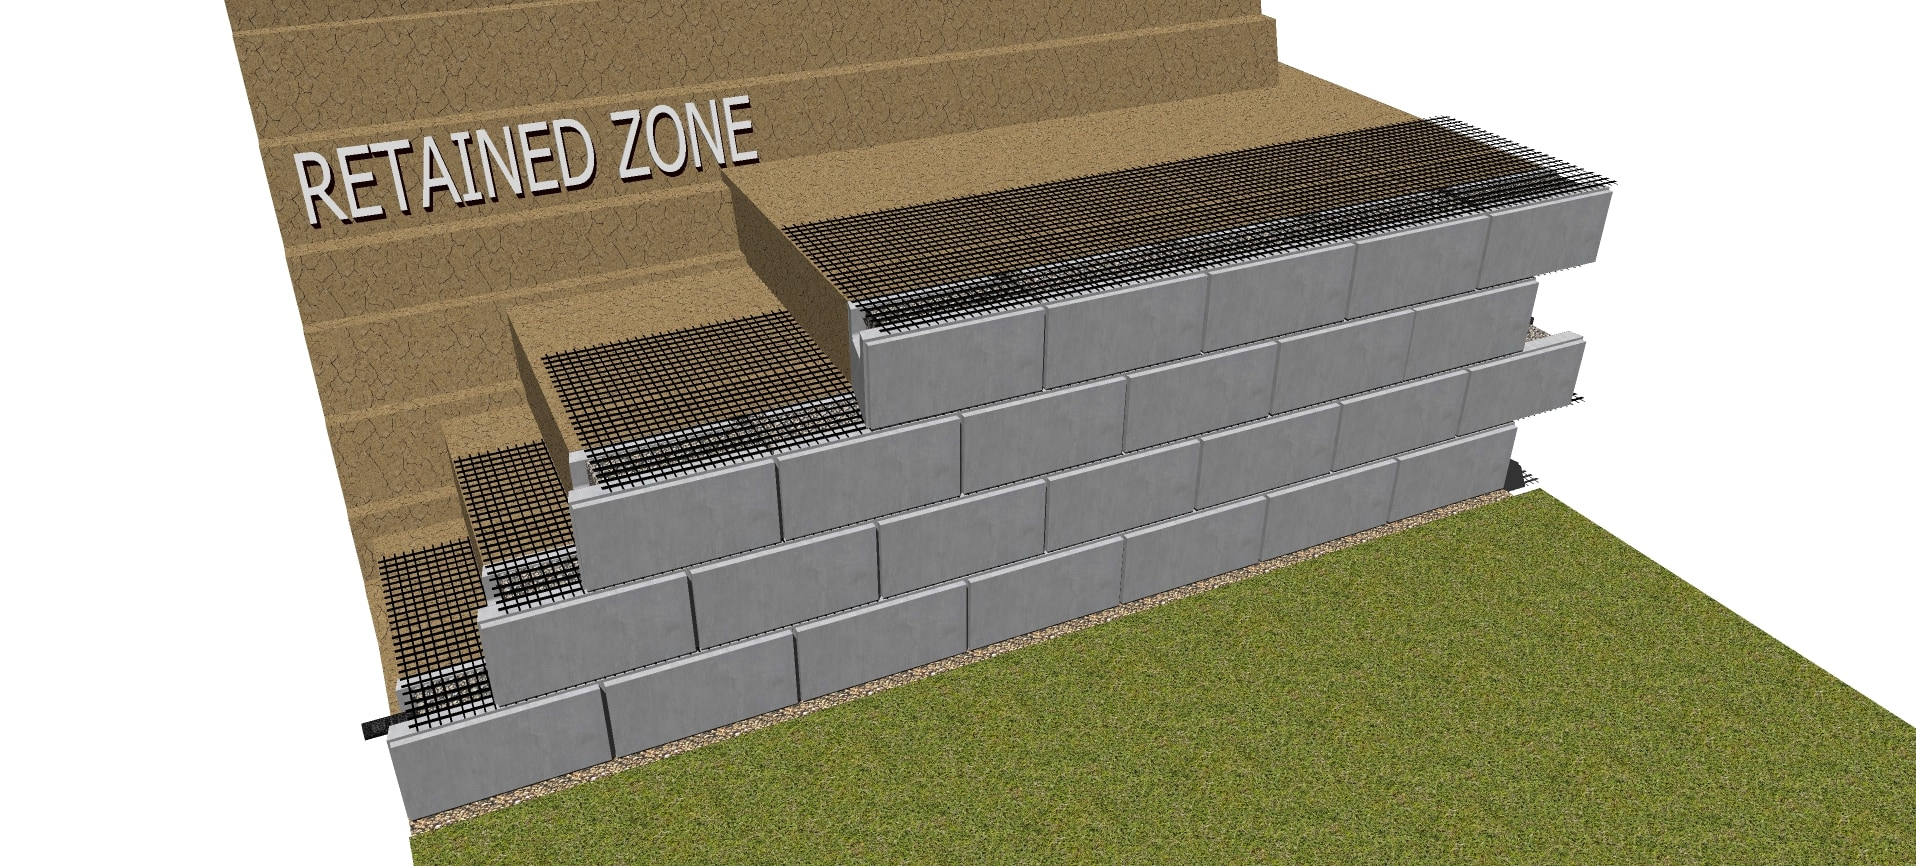 fourth row geogrid retaining wall for magnumstone